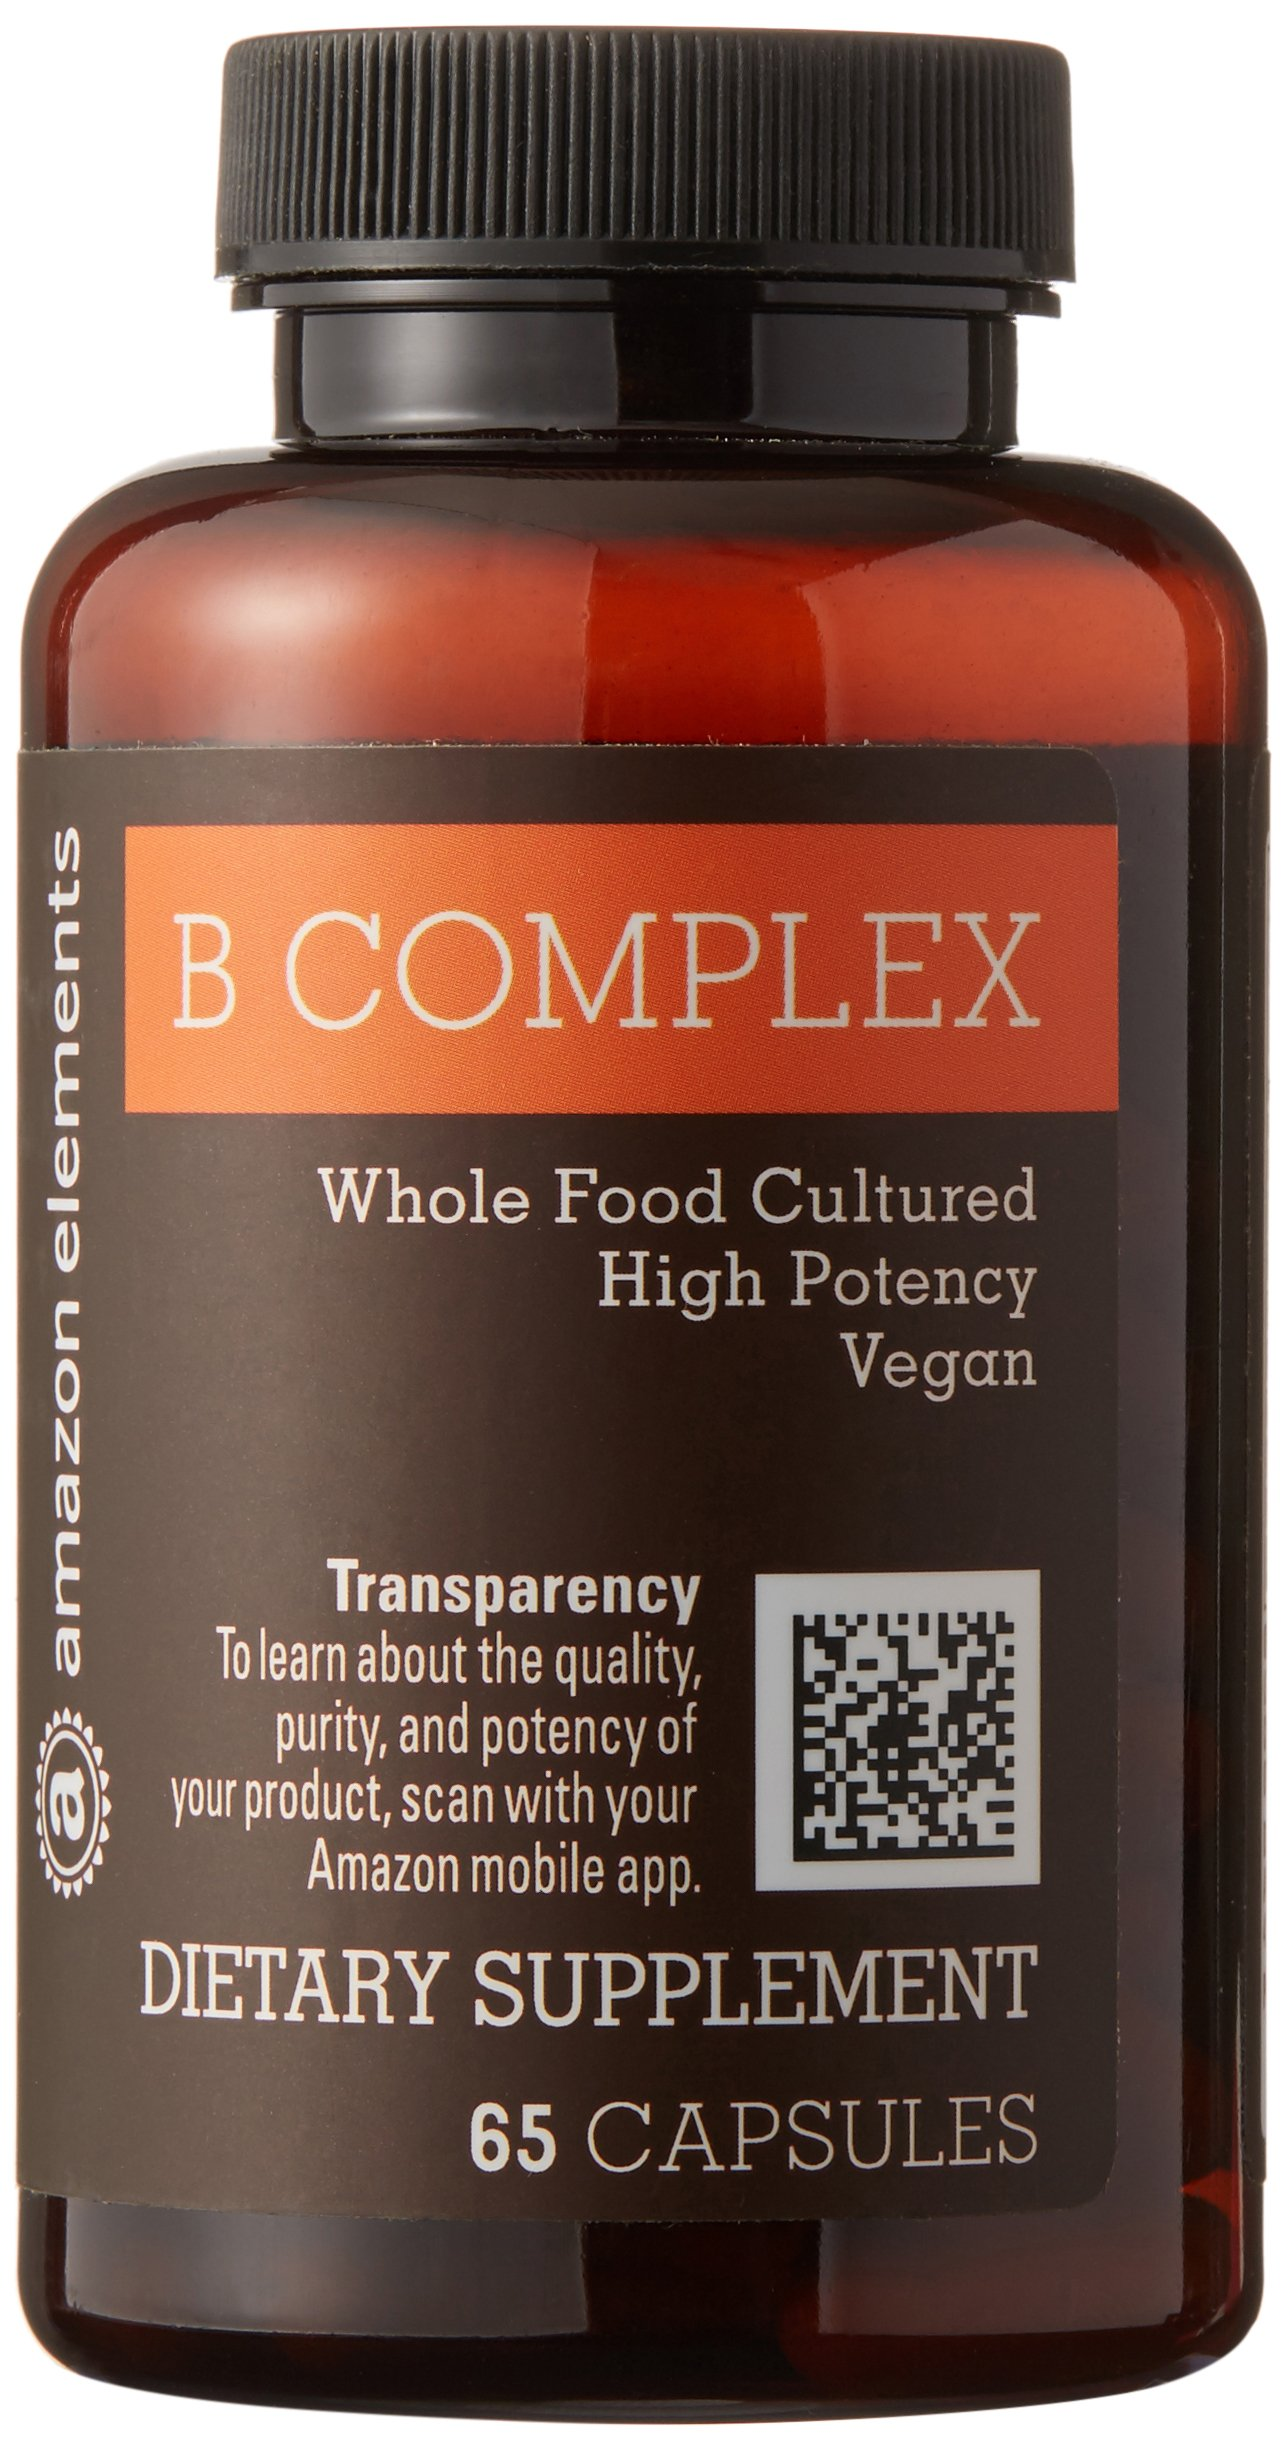 Amazon Elements B Complex, High Potency, 83% Whole Food Cultured, Vegan, 65 Capsules, 2 month supply